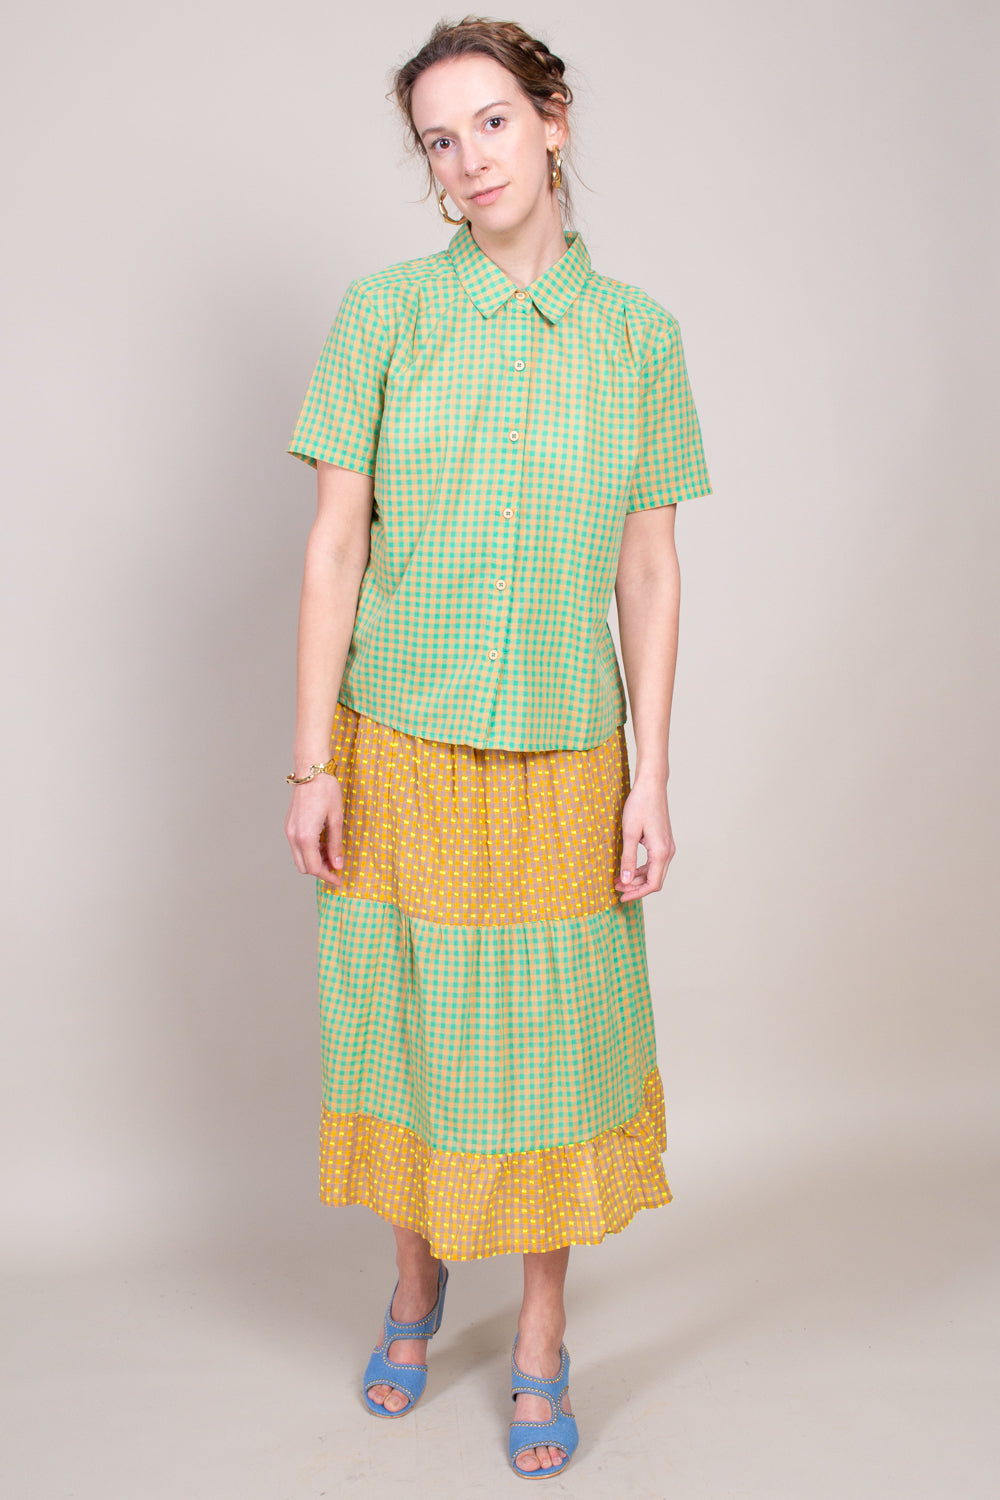 Ace and Jig Daphne Skirt in Cantaloupe - Vert & Vogue